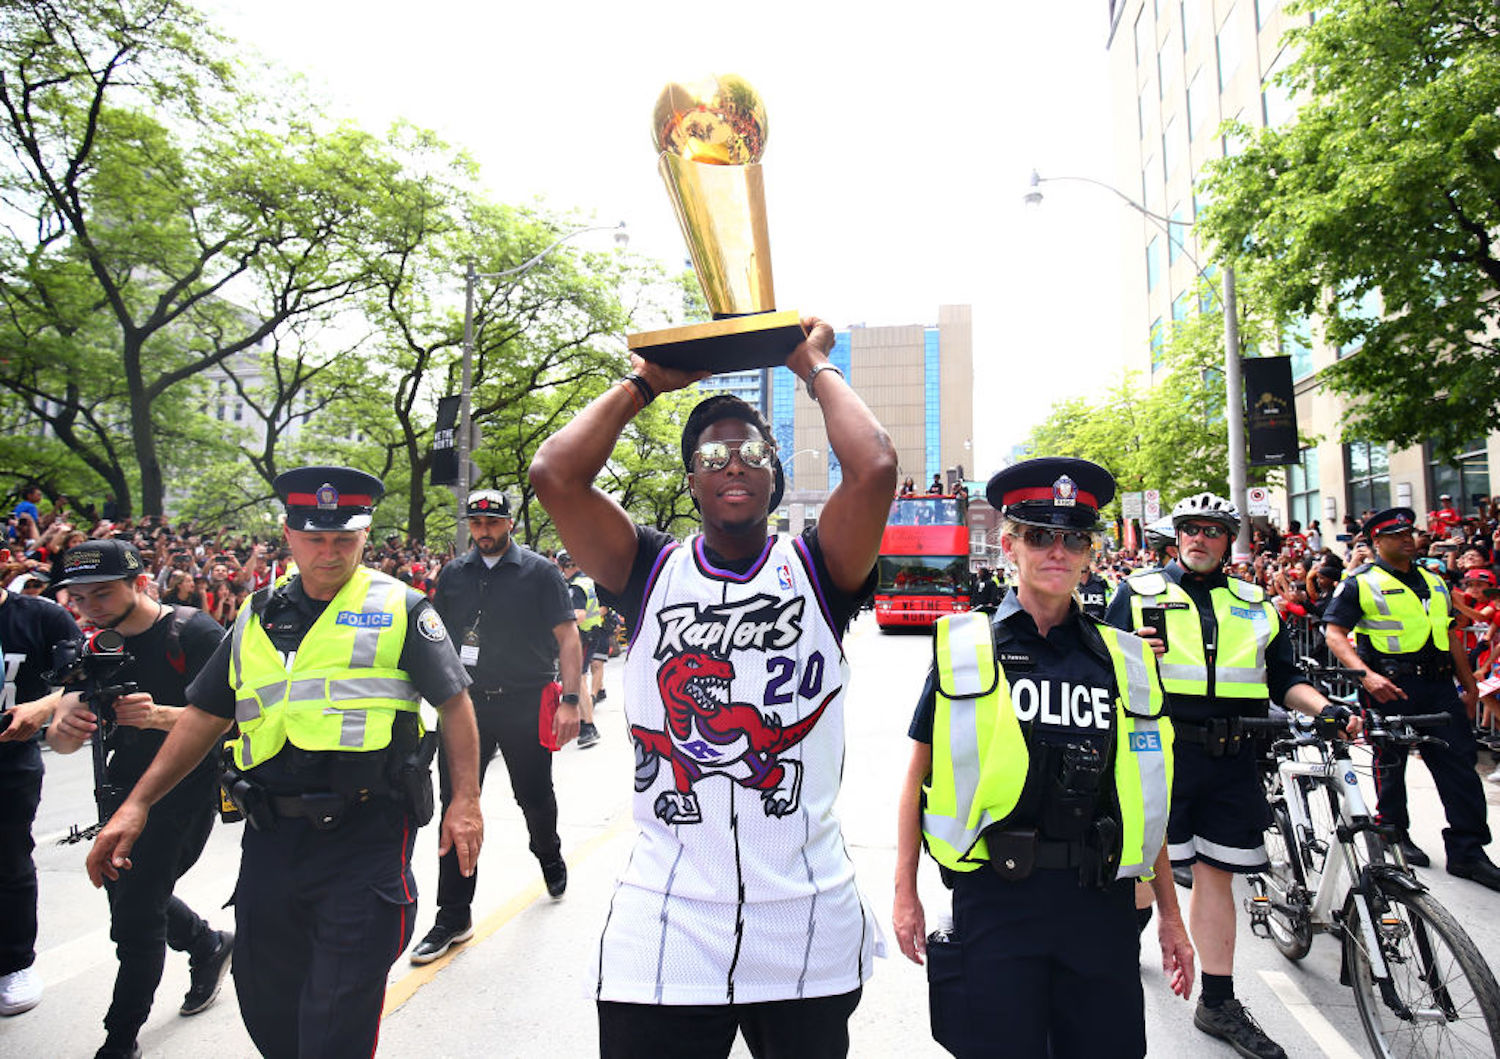 Kyle Lowry is a six-time All-Star and an NBA champion, but he's not regarded as a surefire Hall of Famer. Well, maybe he should be.